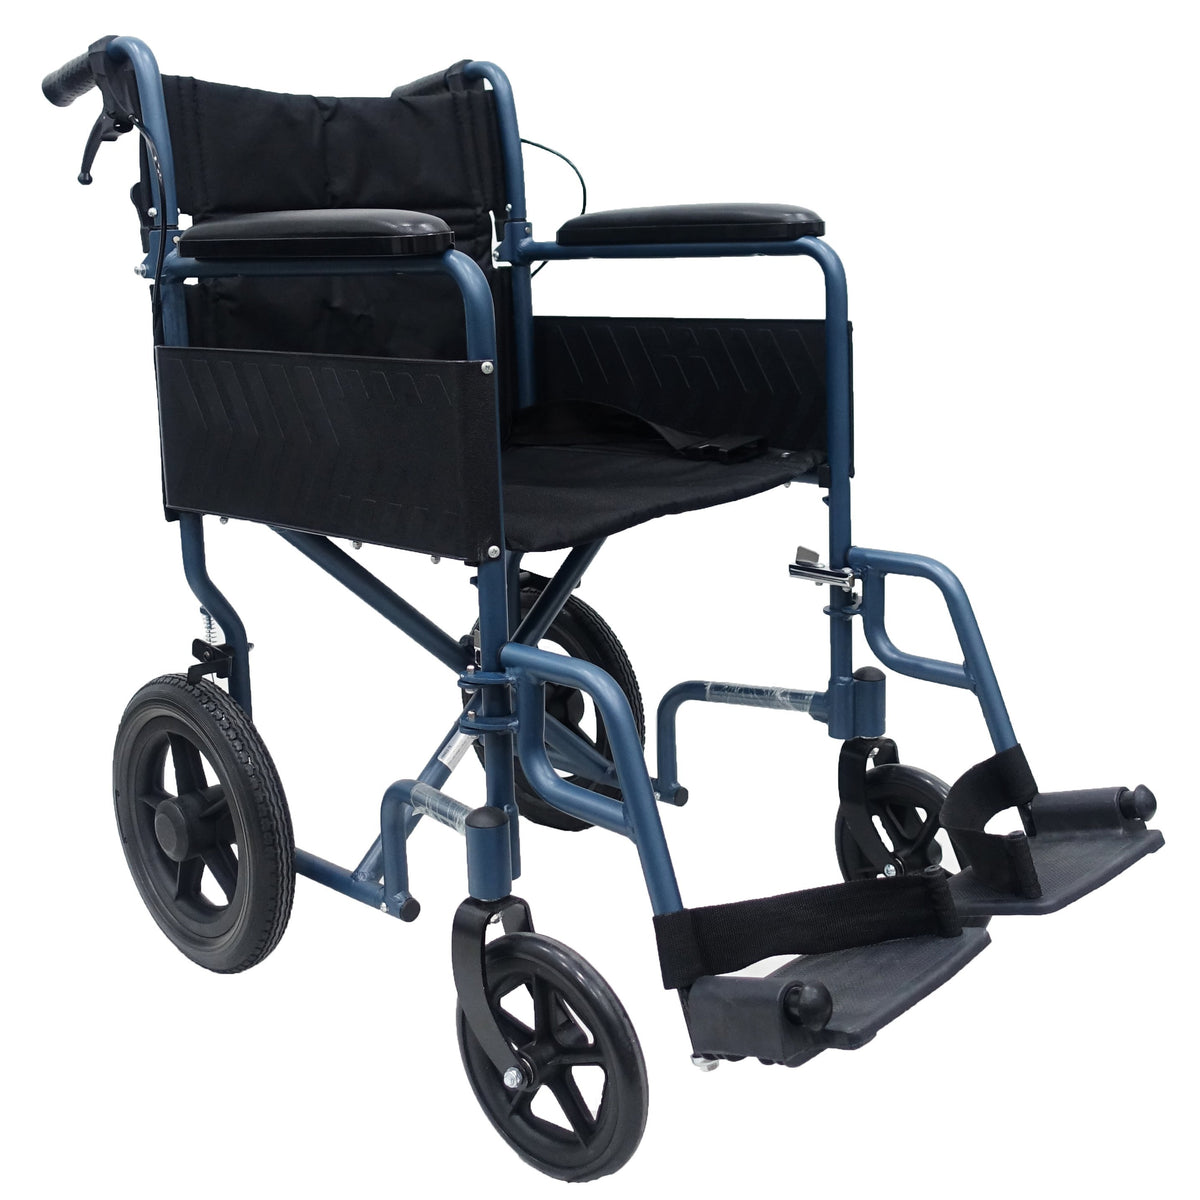 Good Quality Lightweight Wheelchairs SG @$199   The Golden Concepts